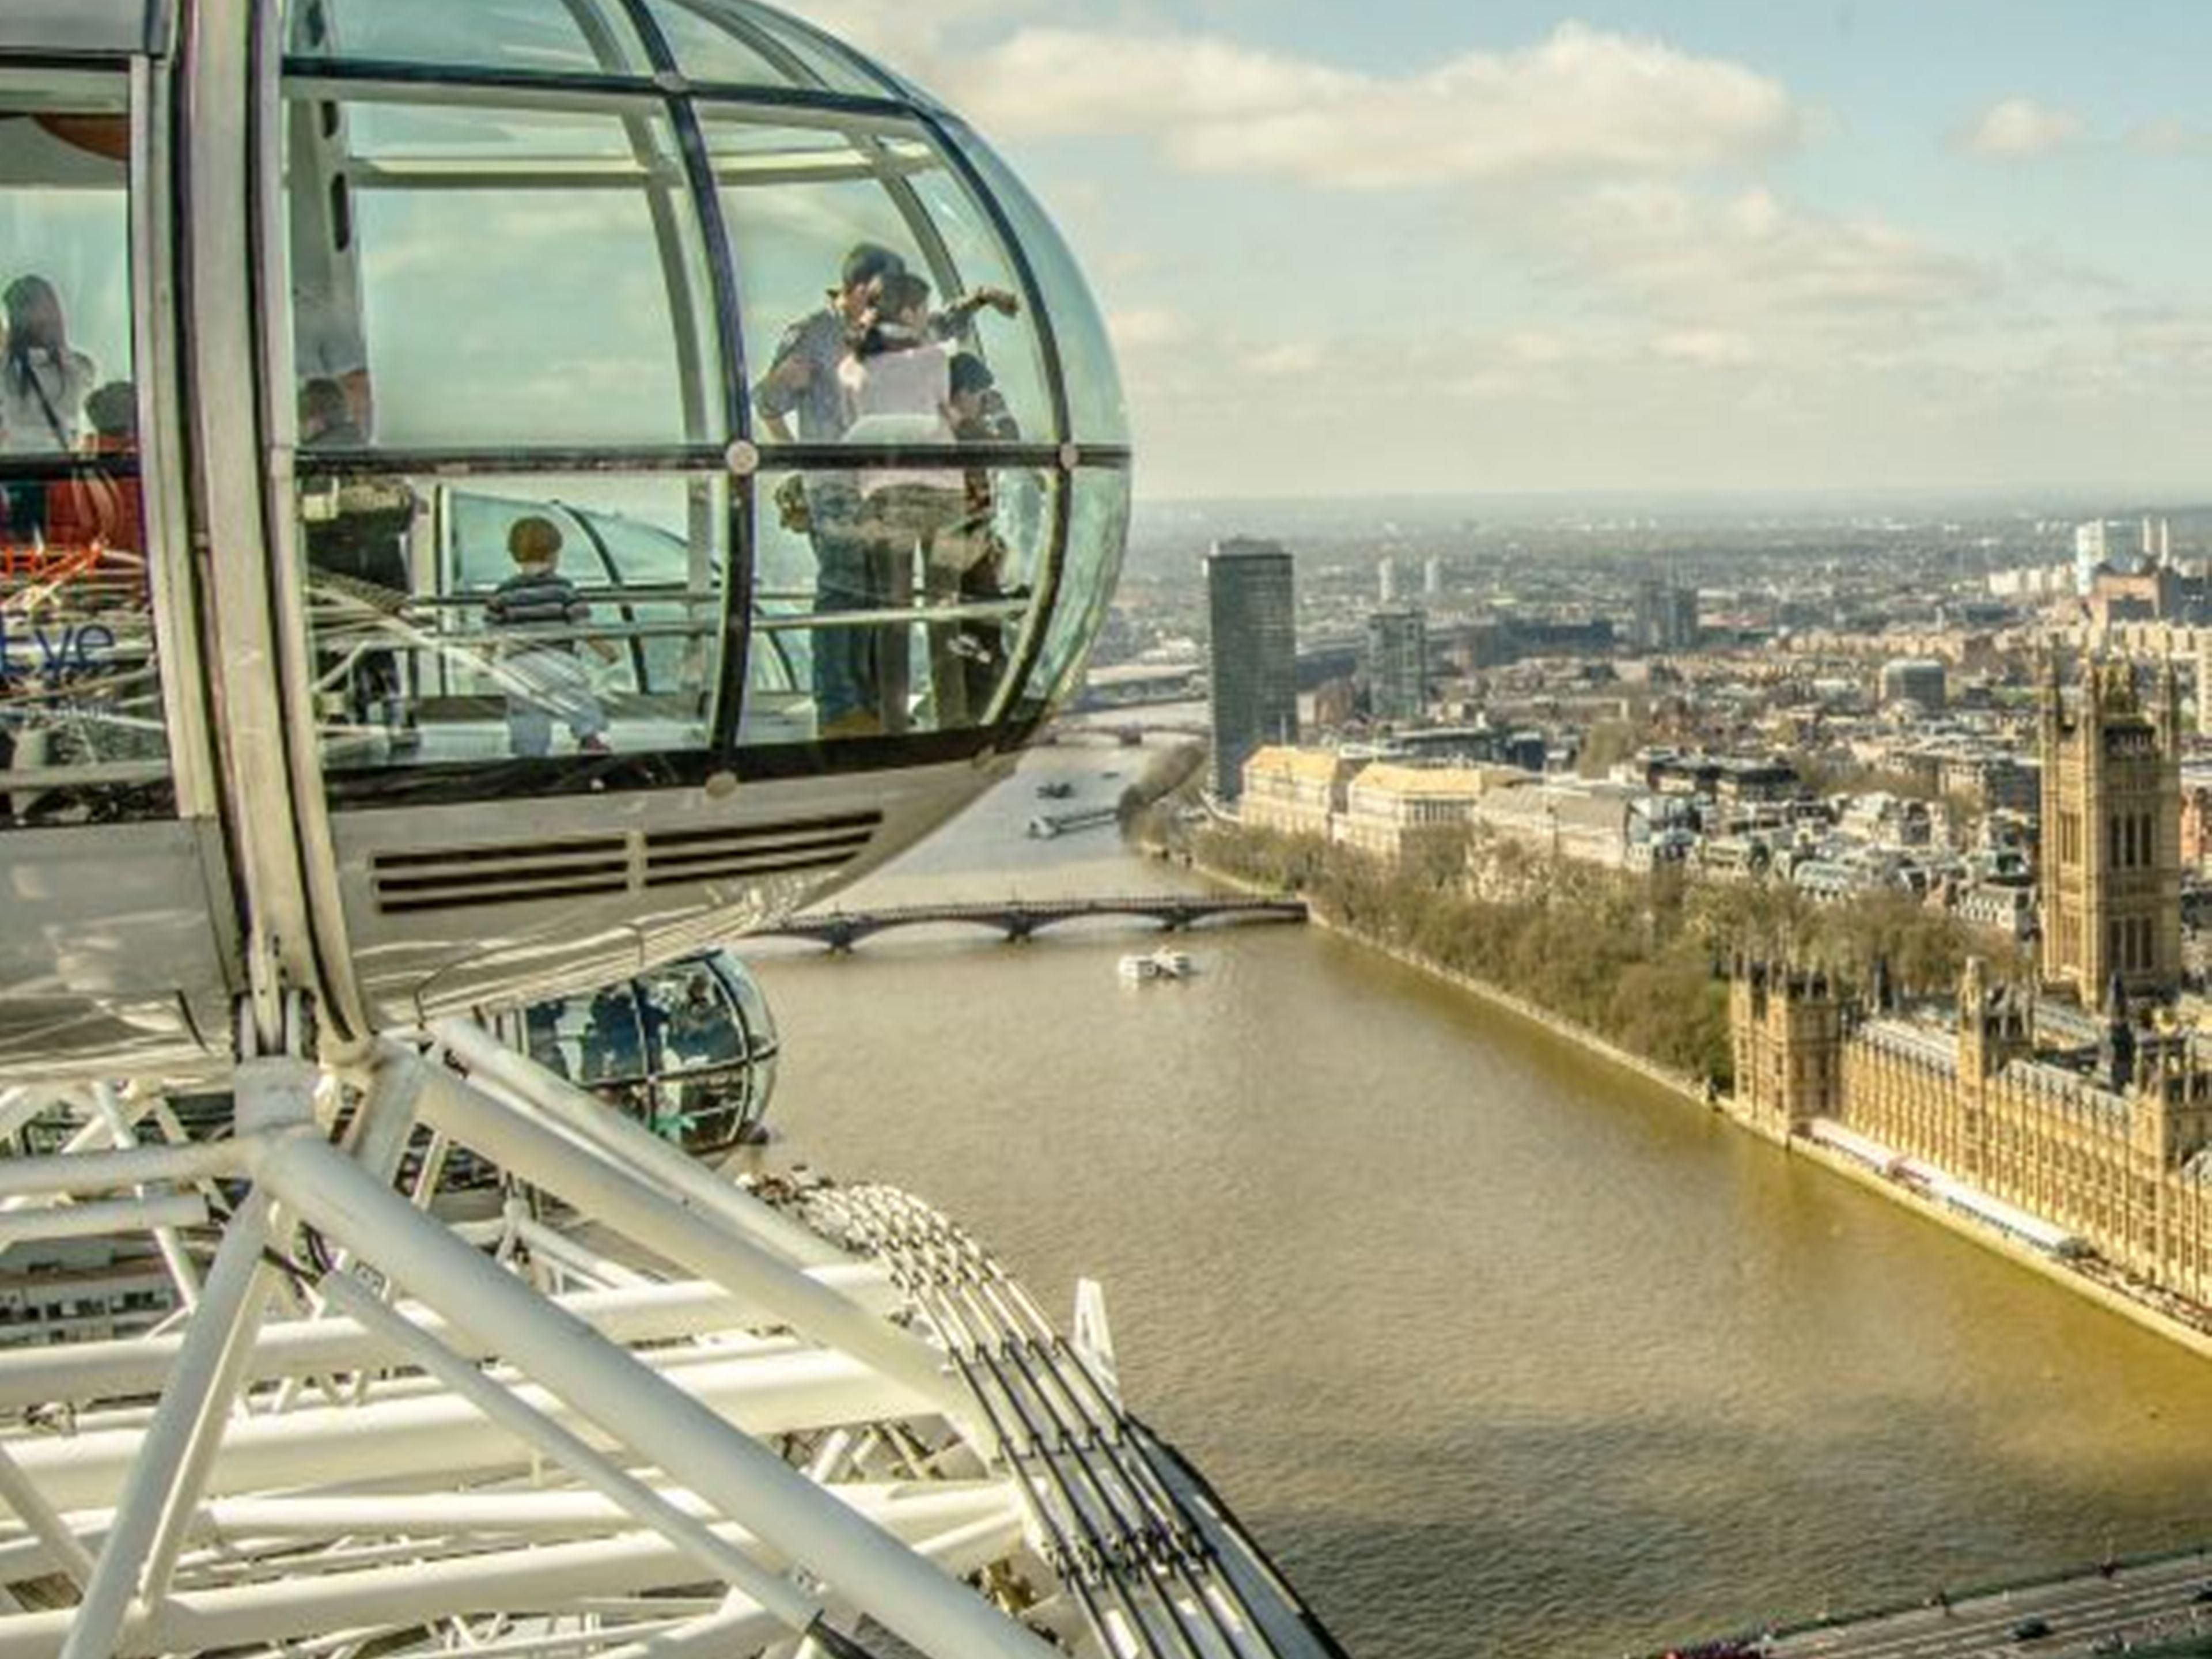 London Eye is located 23 minutes from the hotel on underground